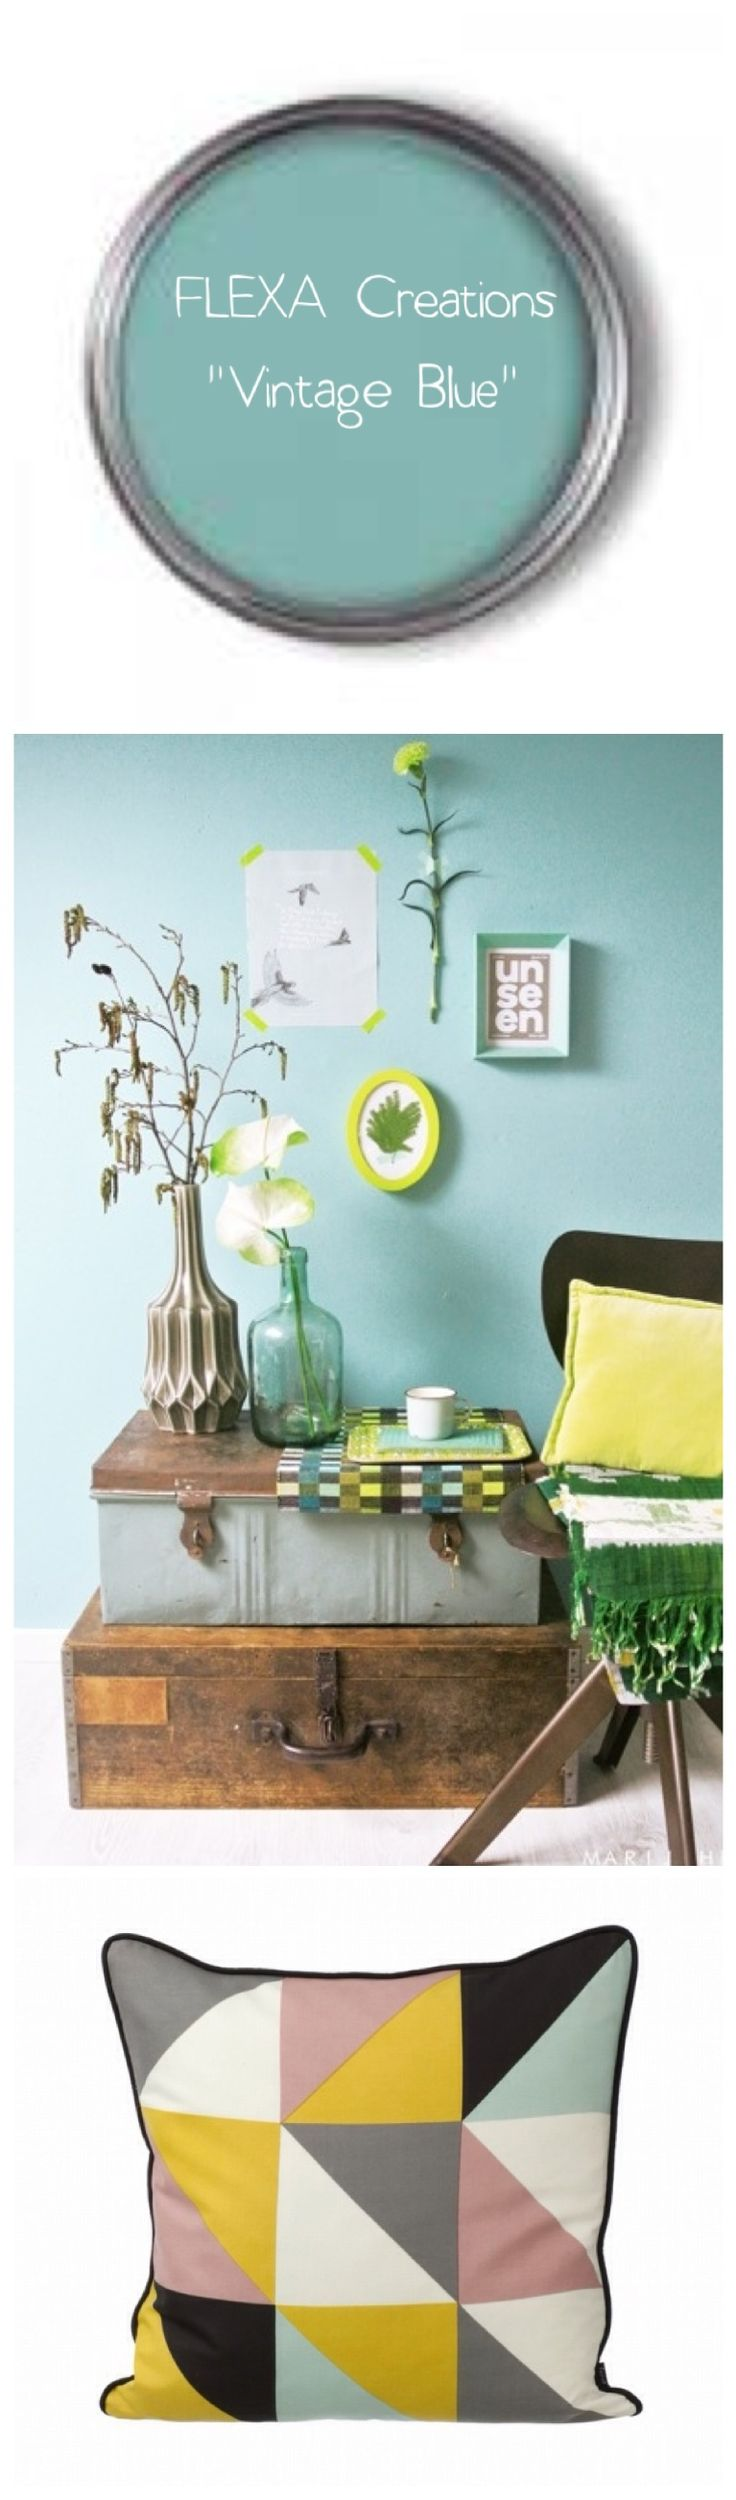 Vintage Blue - FLEXA. for the bedroom wall behind the bed Voor meer inspiratie…